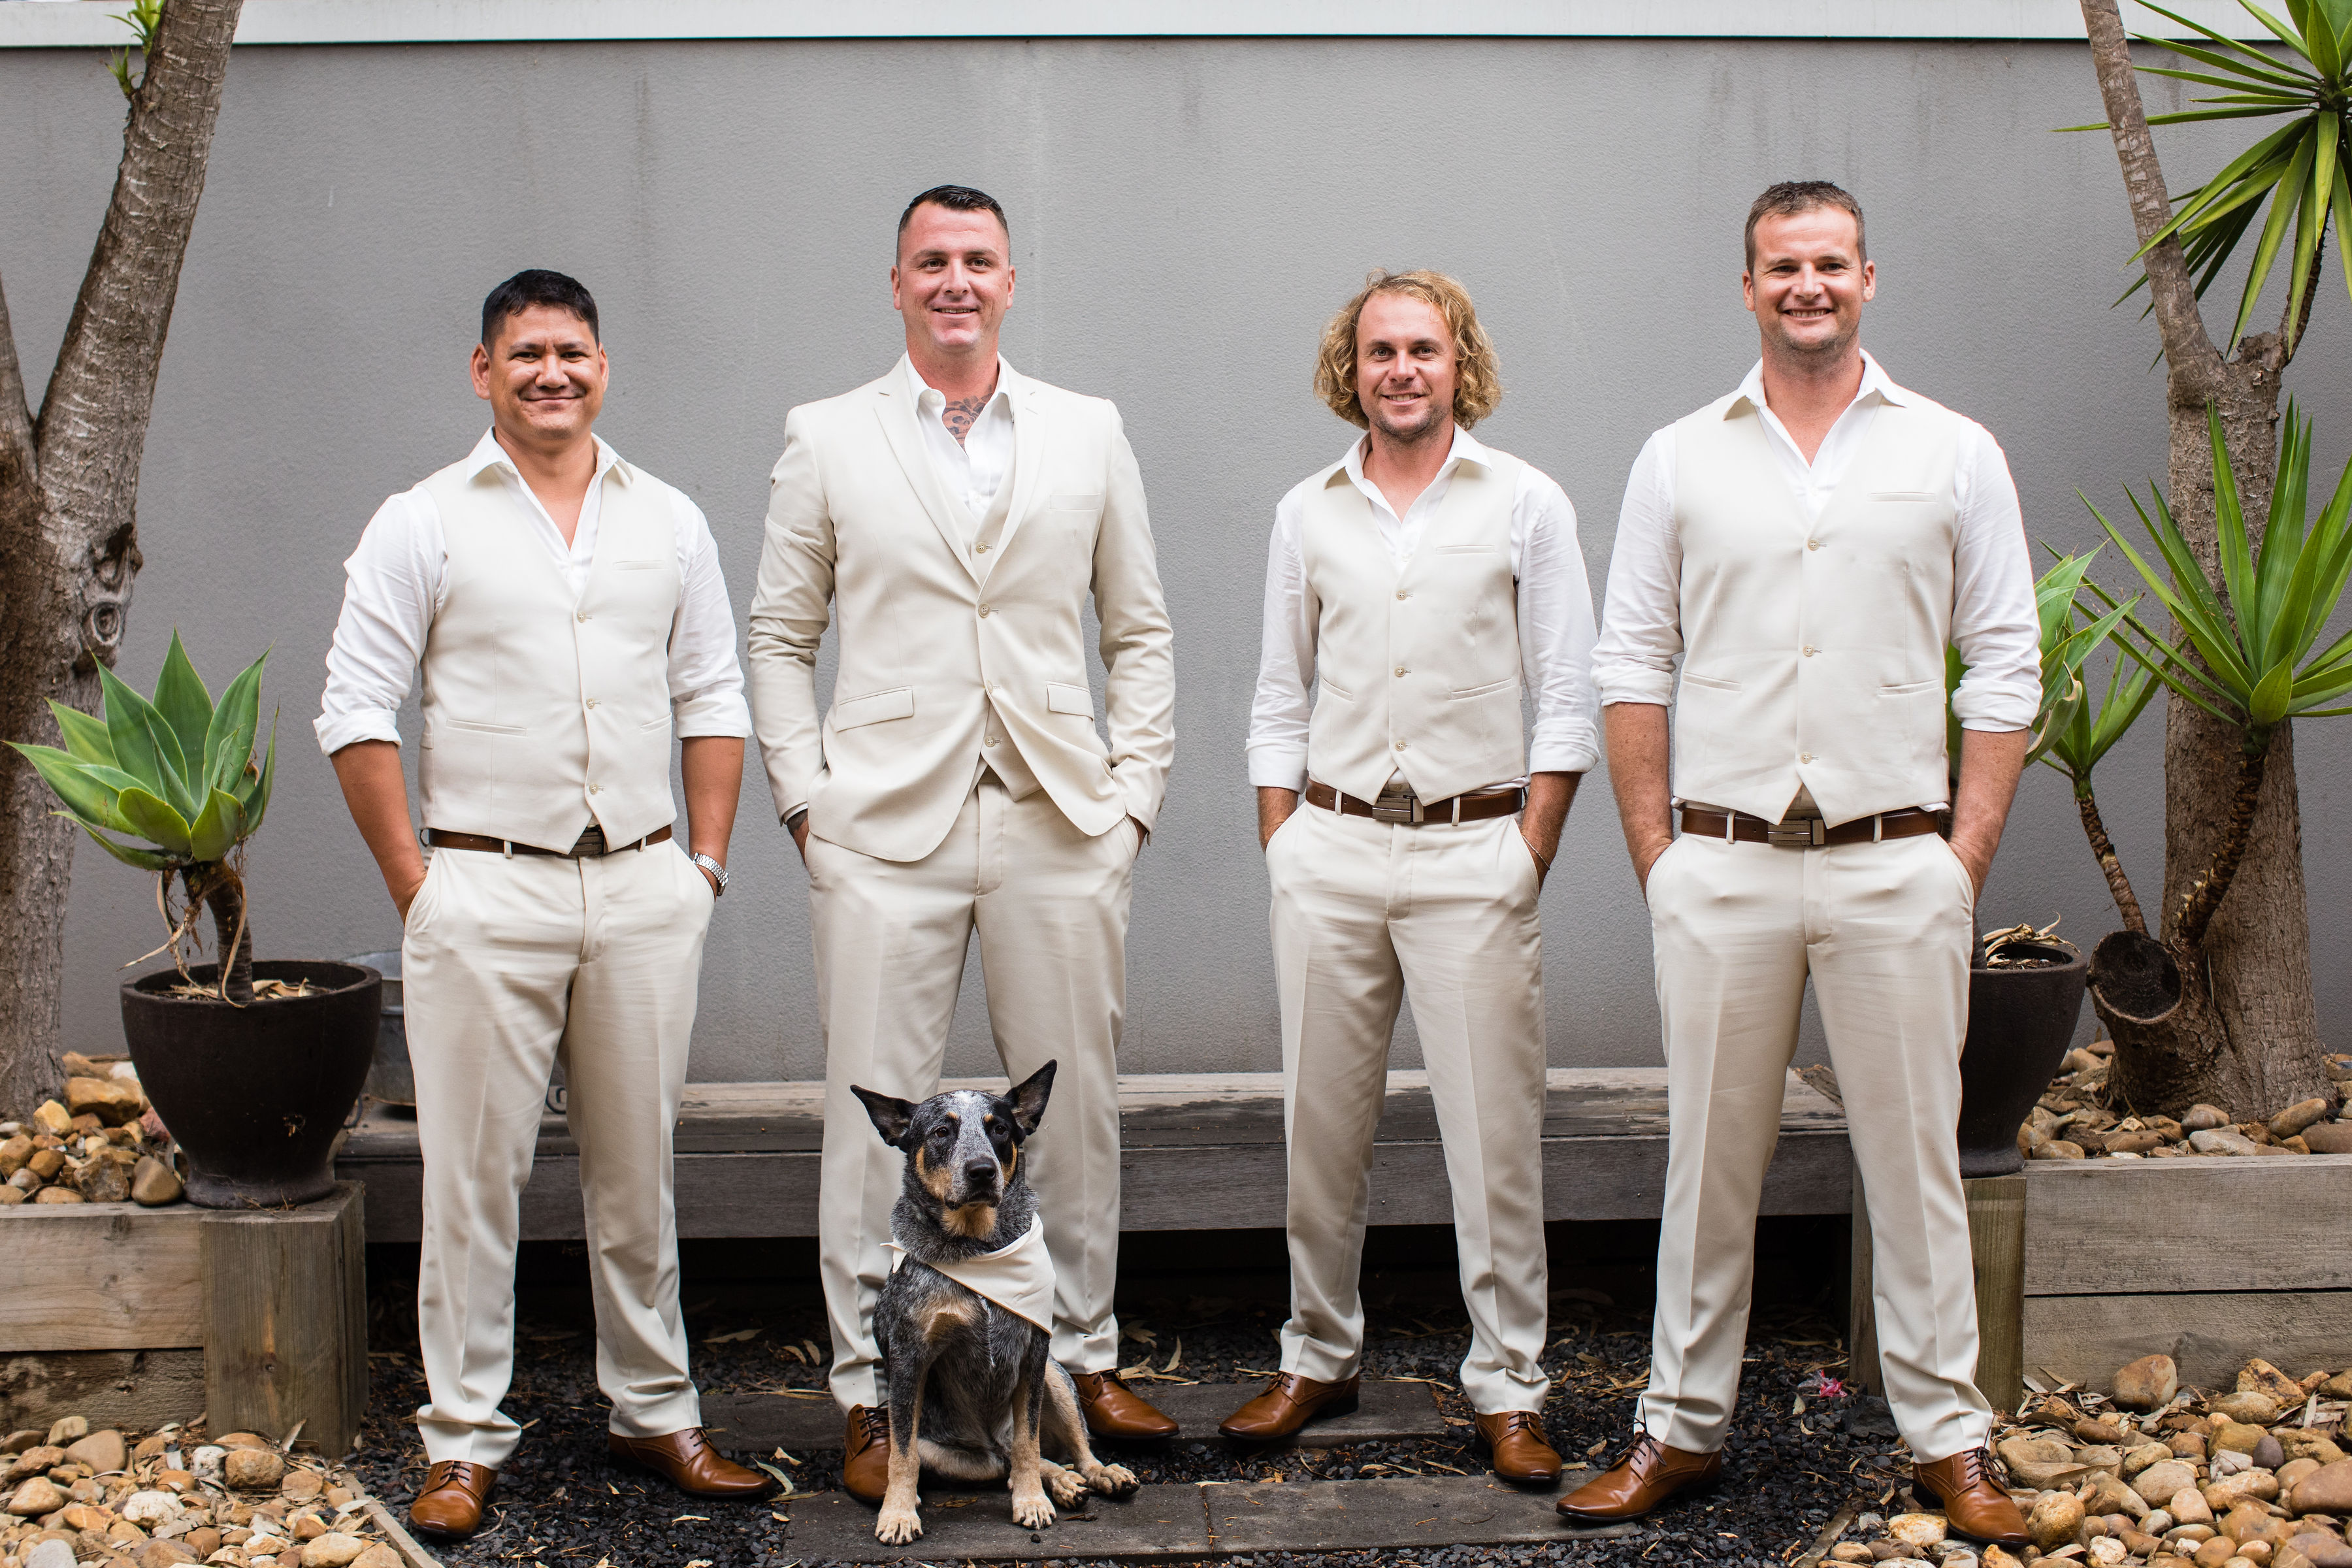 Groom and groomsmen with a dog at a wedding - thinking-of-having-your-dog-at-your-wedding